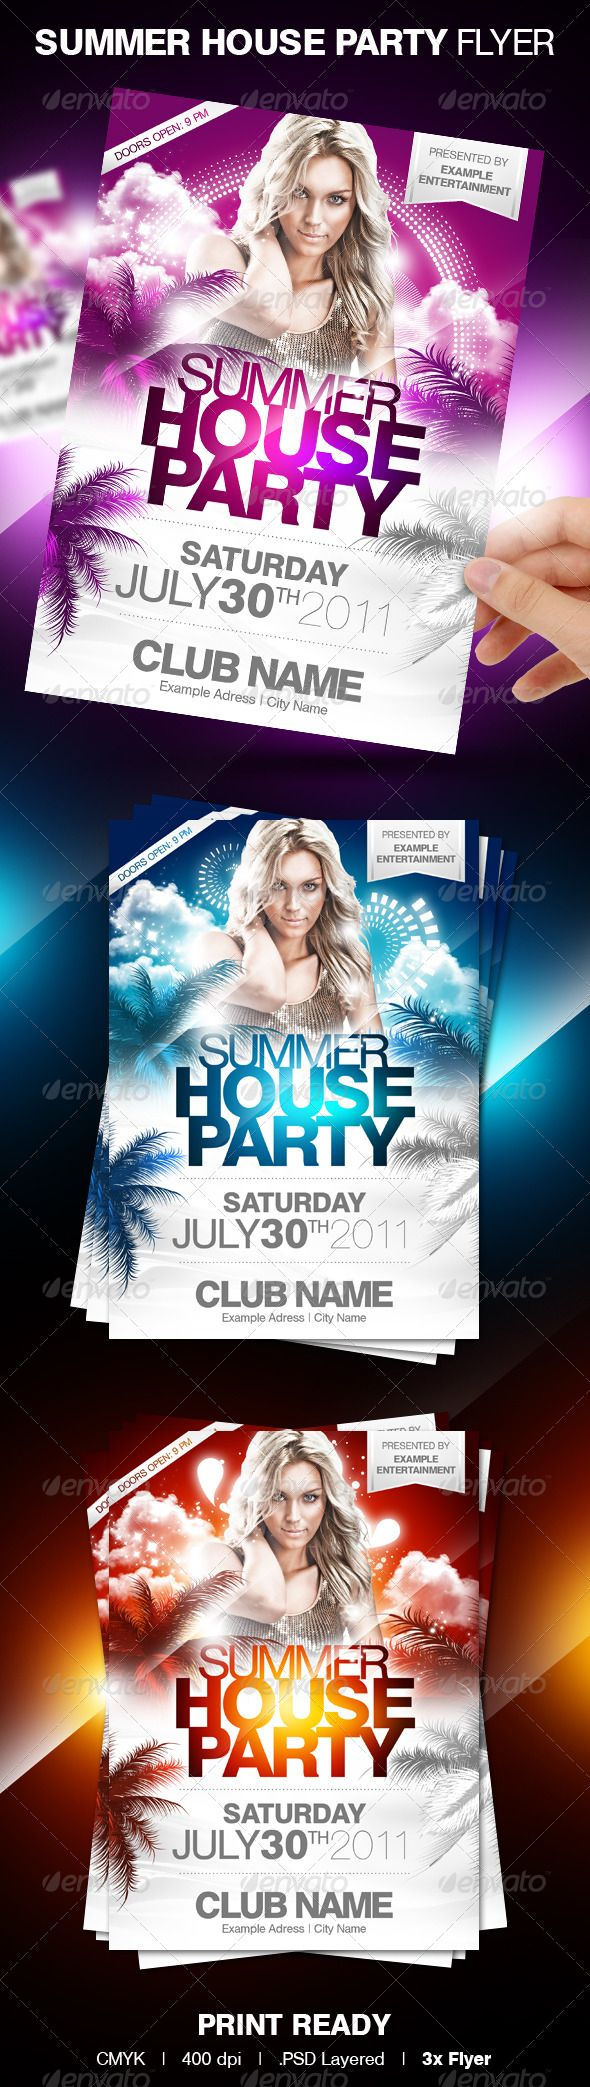 17 best images about flyer design nightclub party summer house party flyer